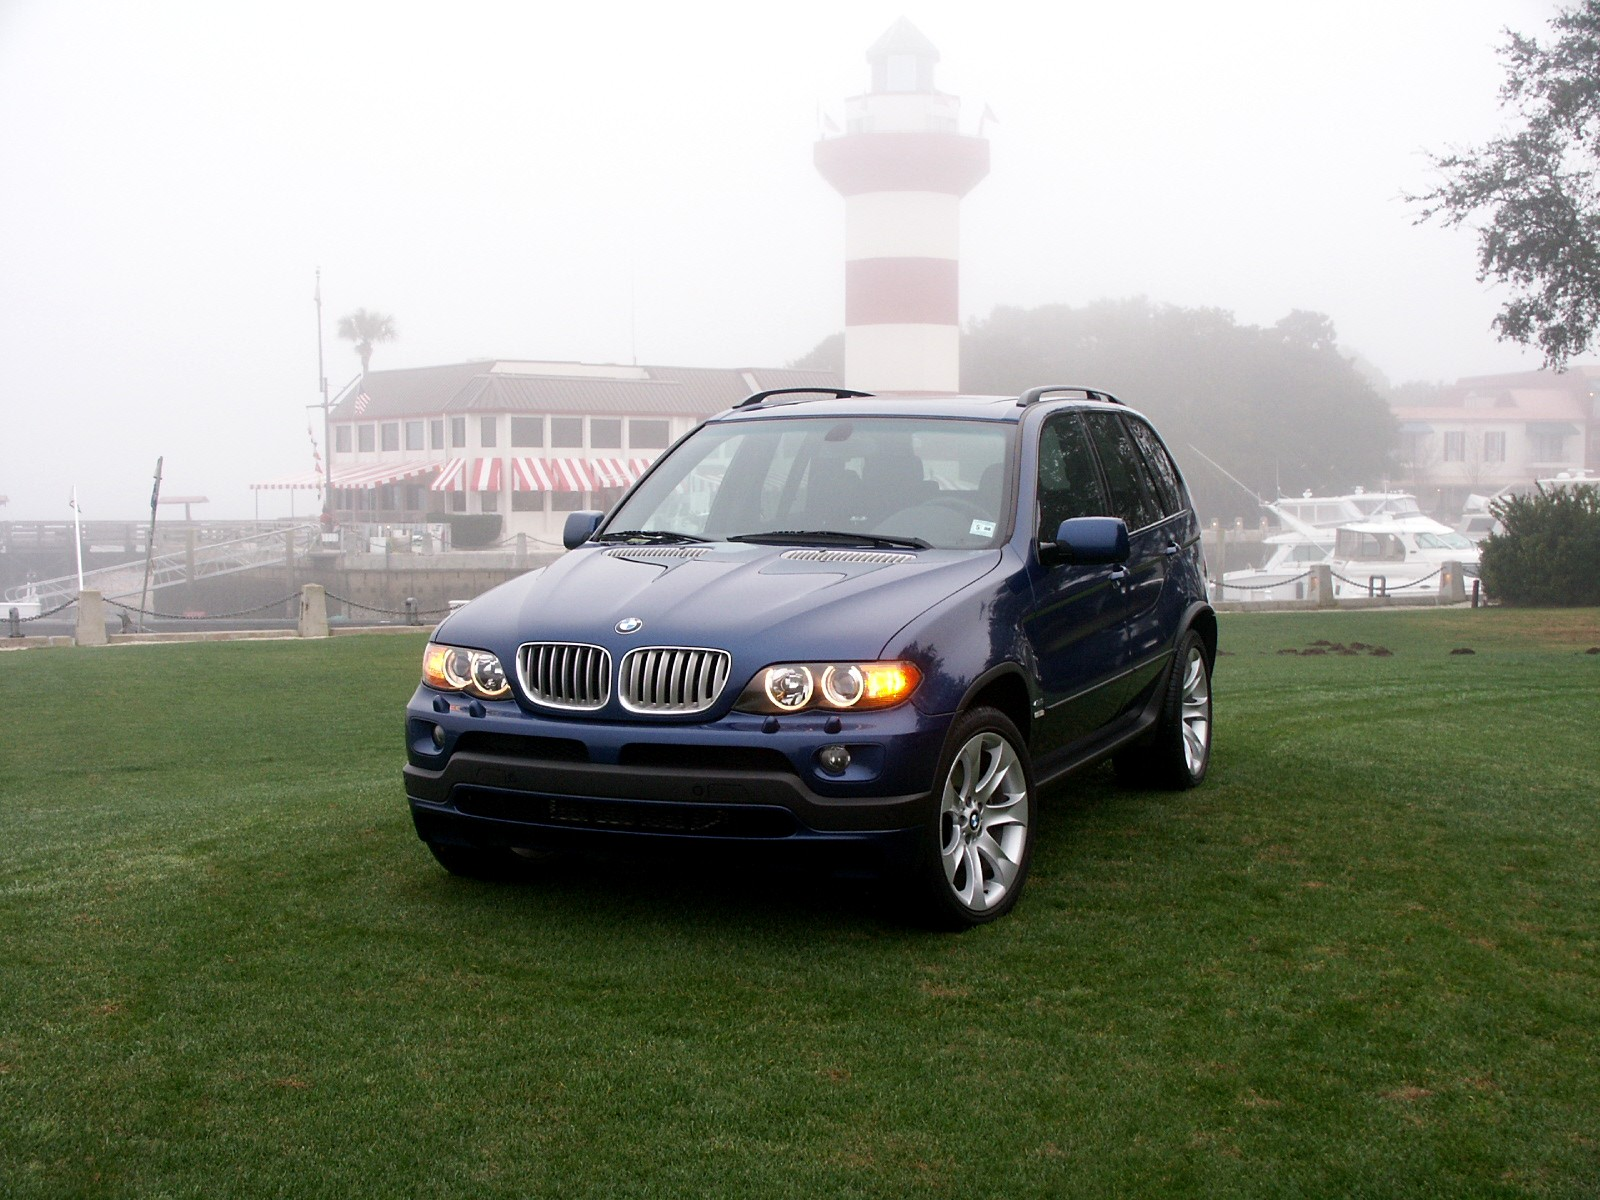 2005 bmw x5 review. Black Bedroom Furniture Sets. Home Design Ideas